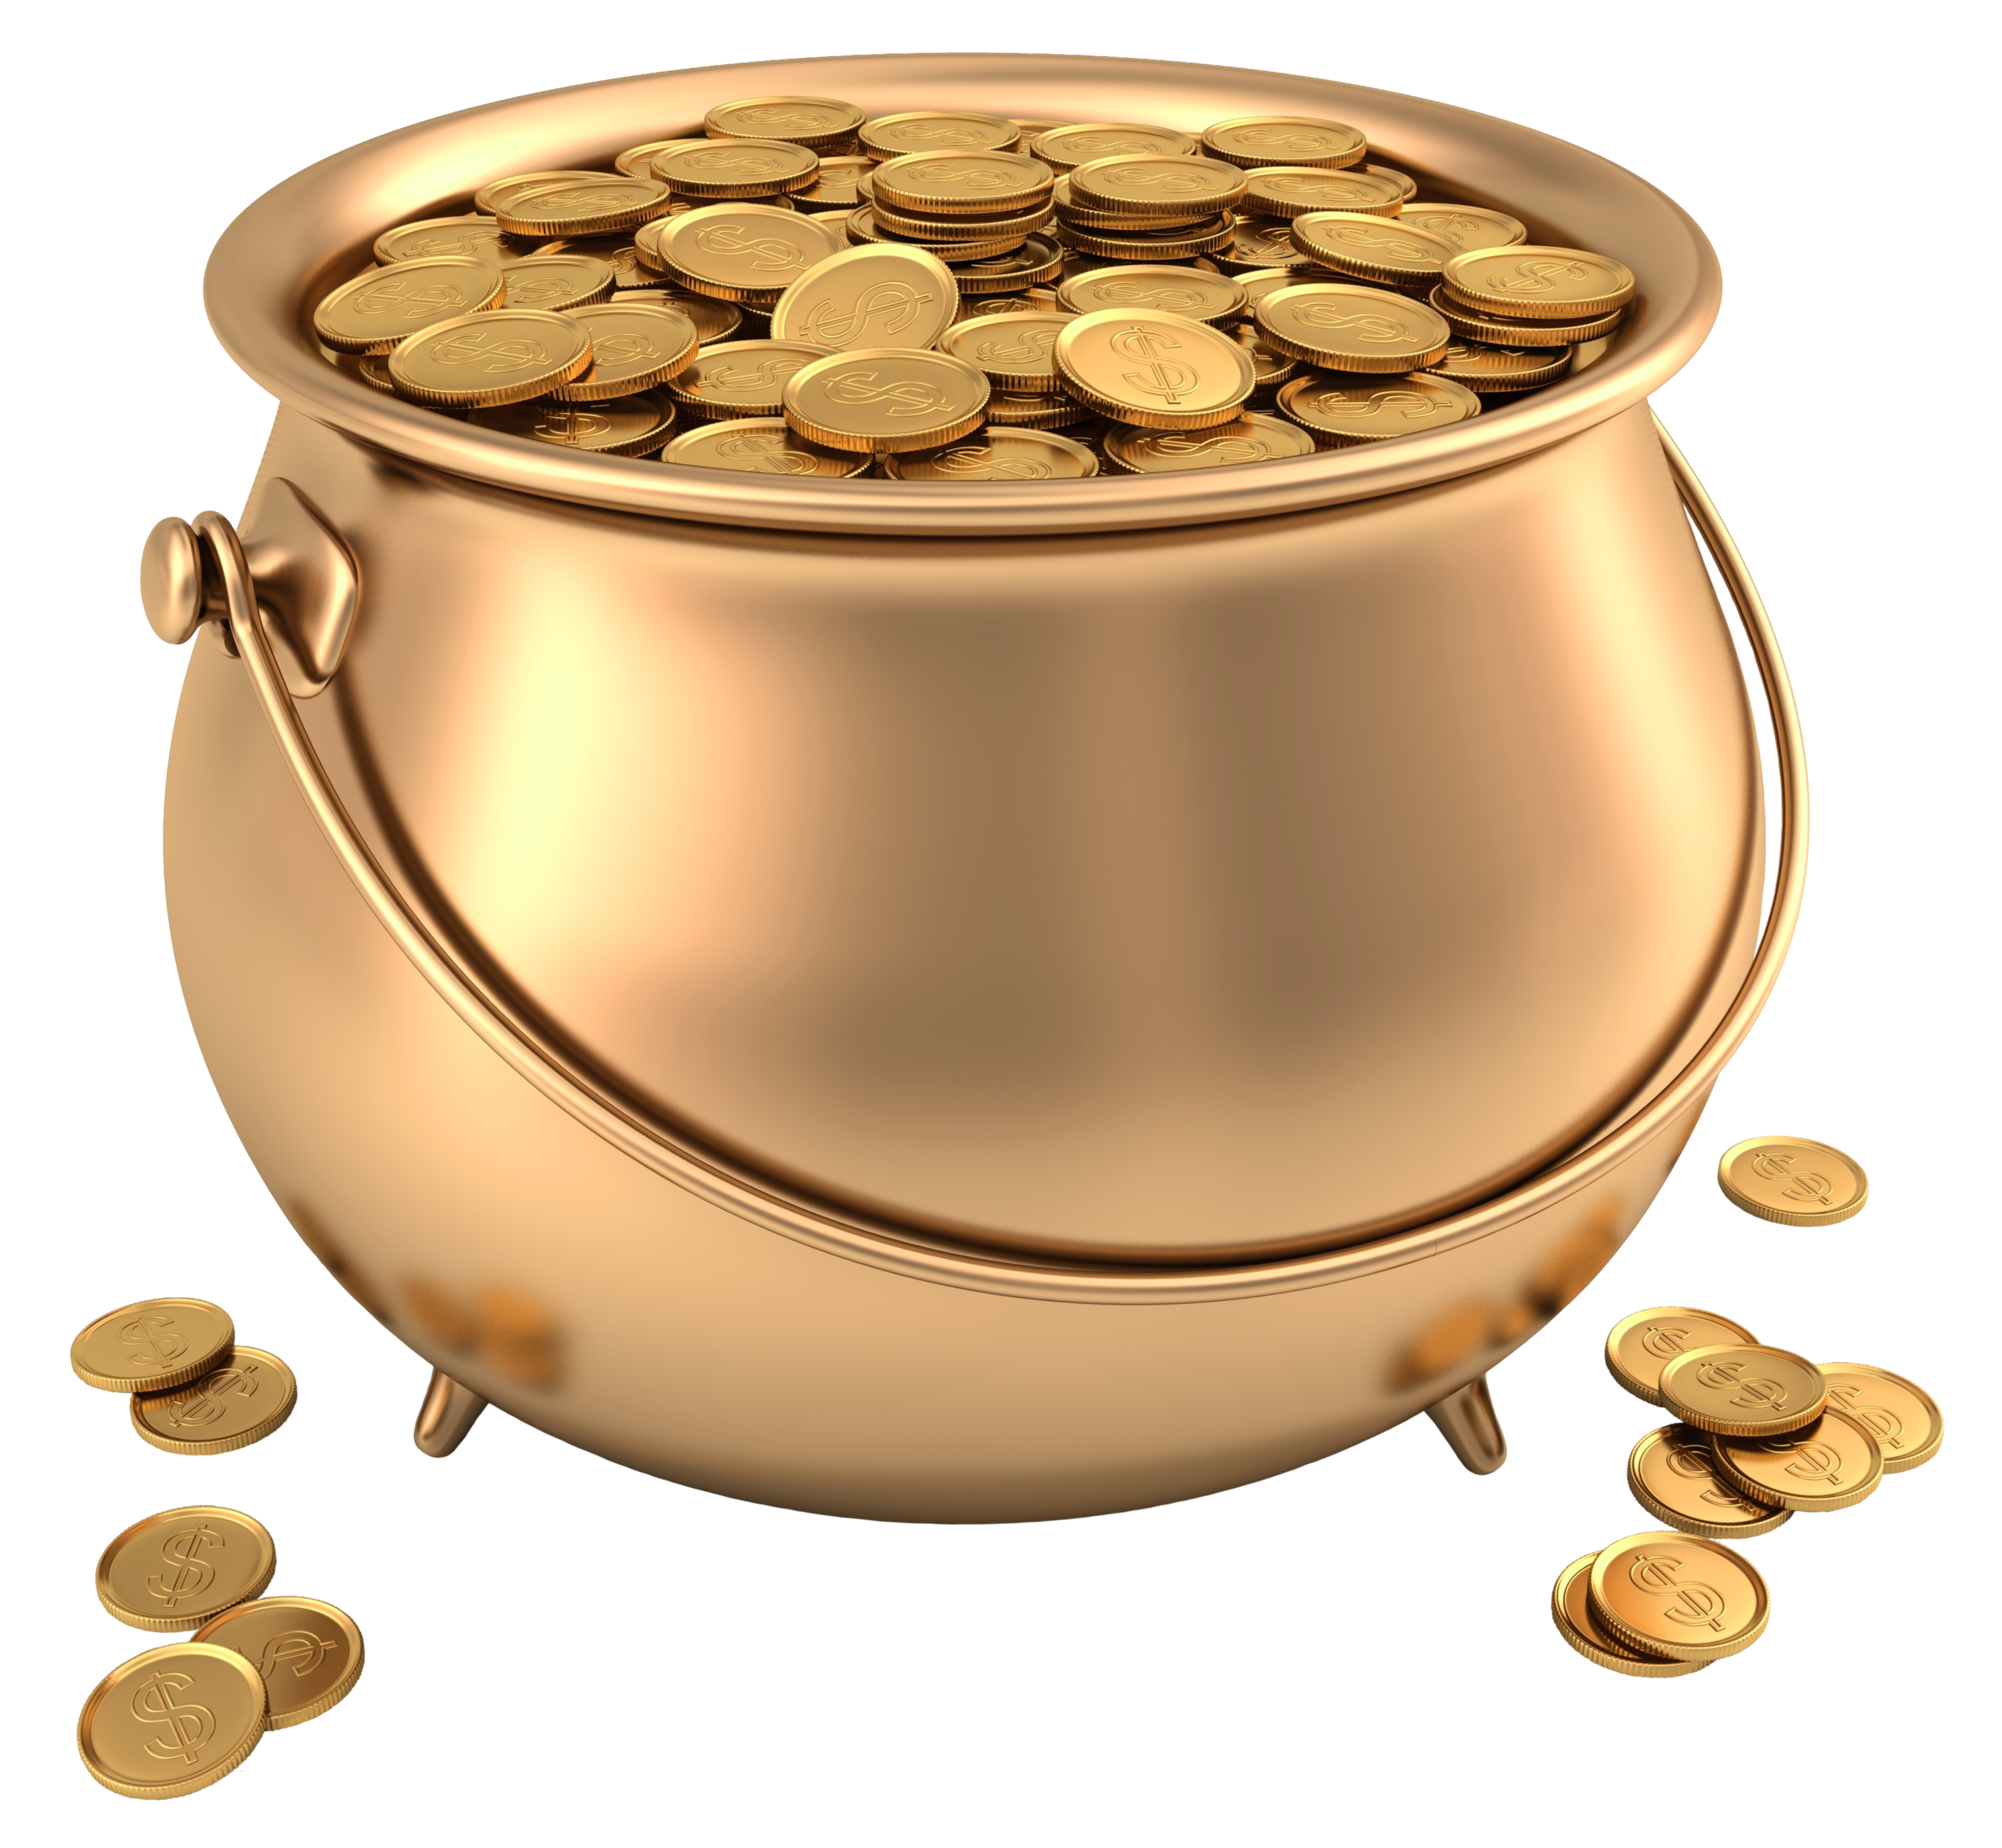 Free Pot Of Gold Transparent Background, Download Free Clip.